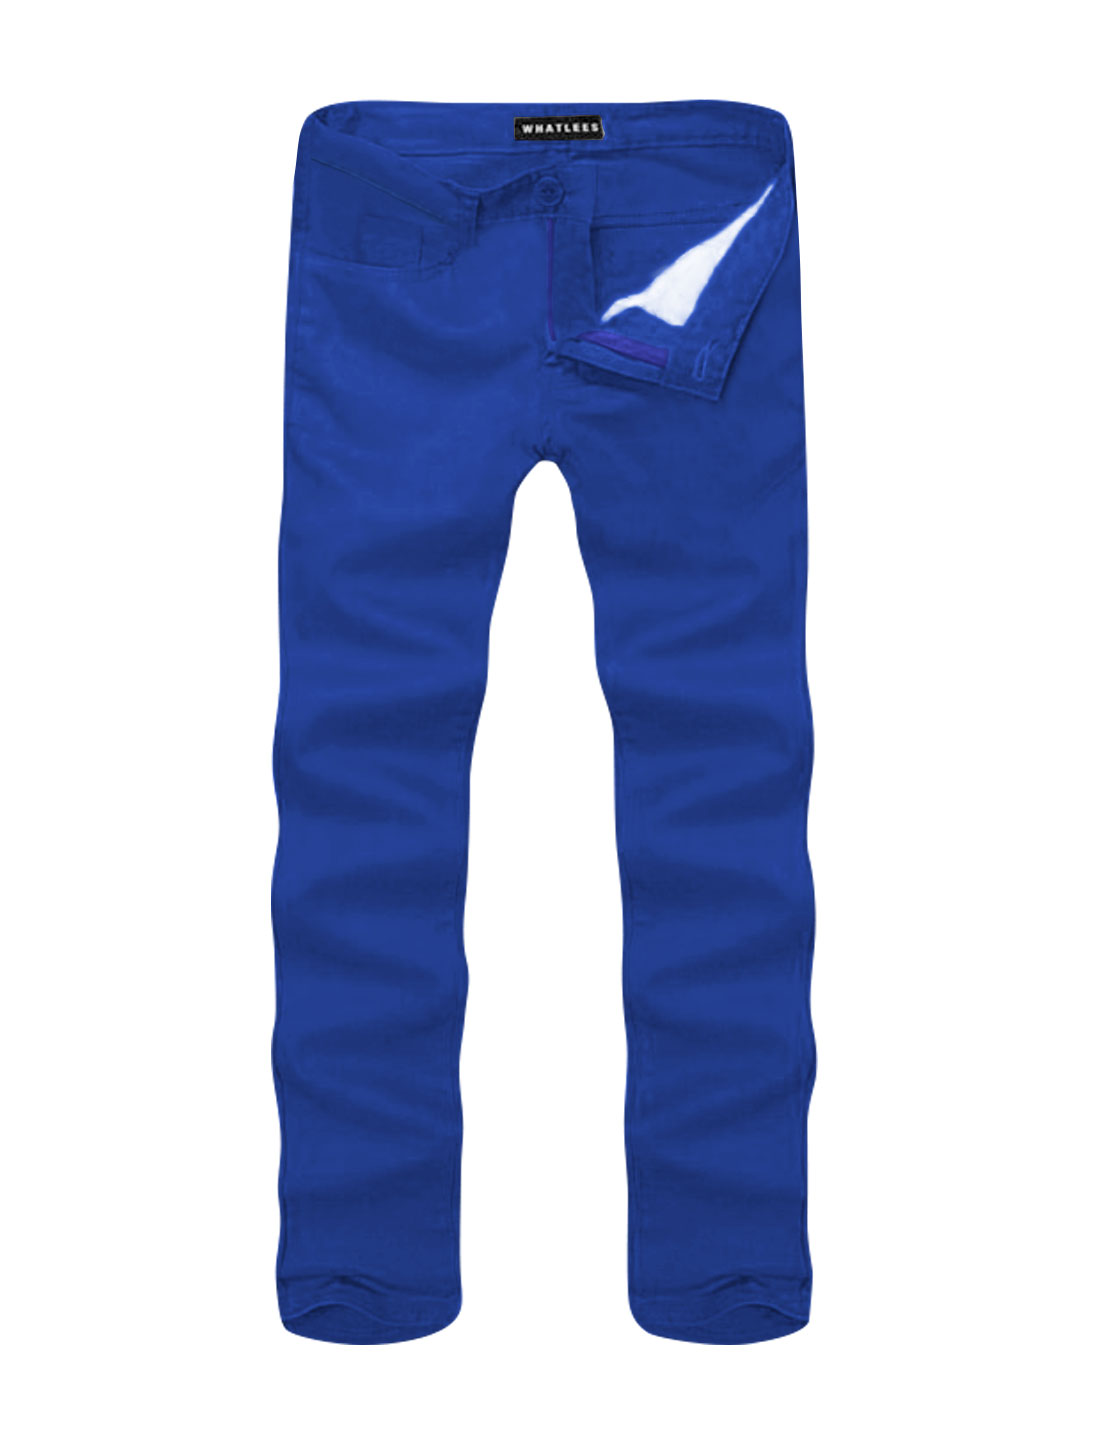 Men Mid Rise Zip Fly Side Pockets Straight Leg Casual Pants Royal Blue W36